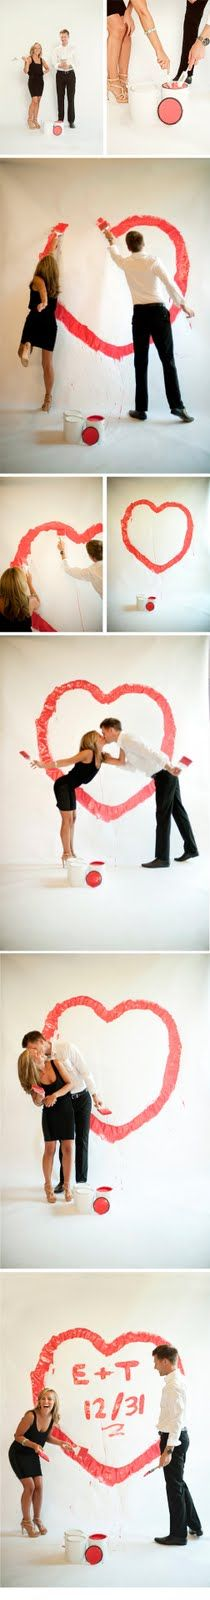 The Art of The Occasion: Too Cute Engagement Shoot!